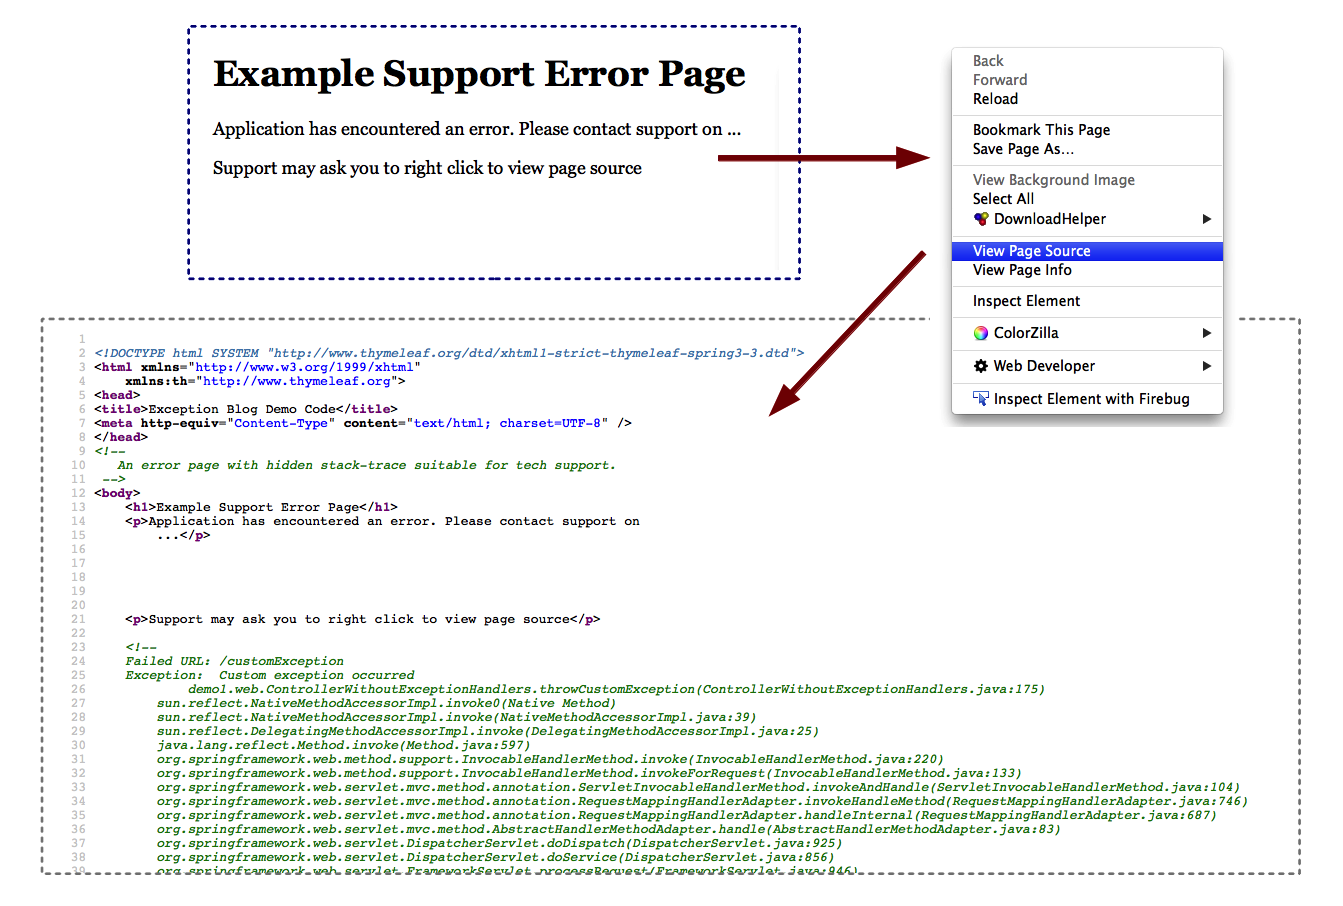 Example of an error page with a hidden exception for support